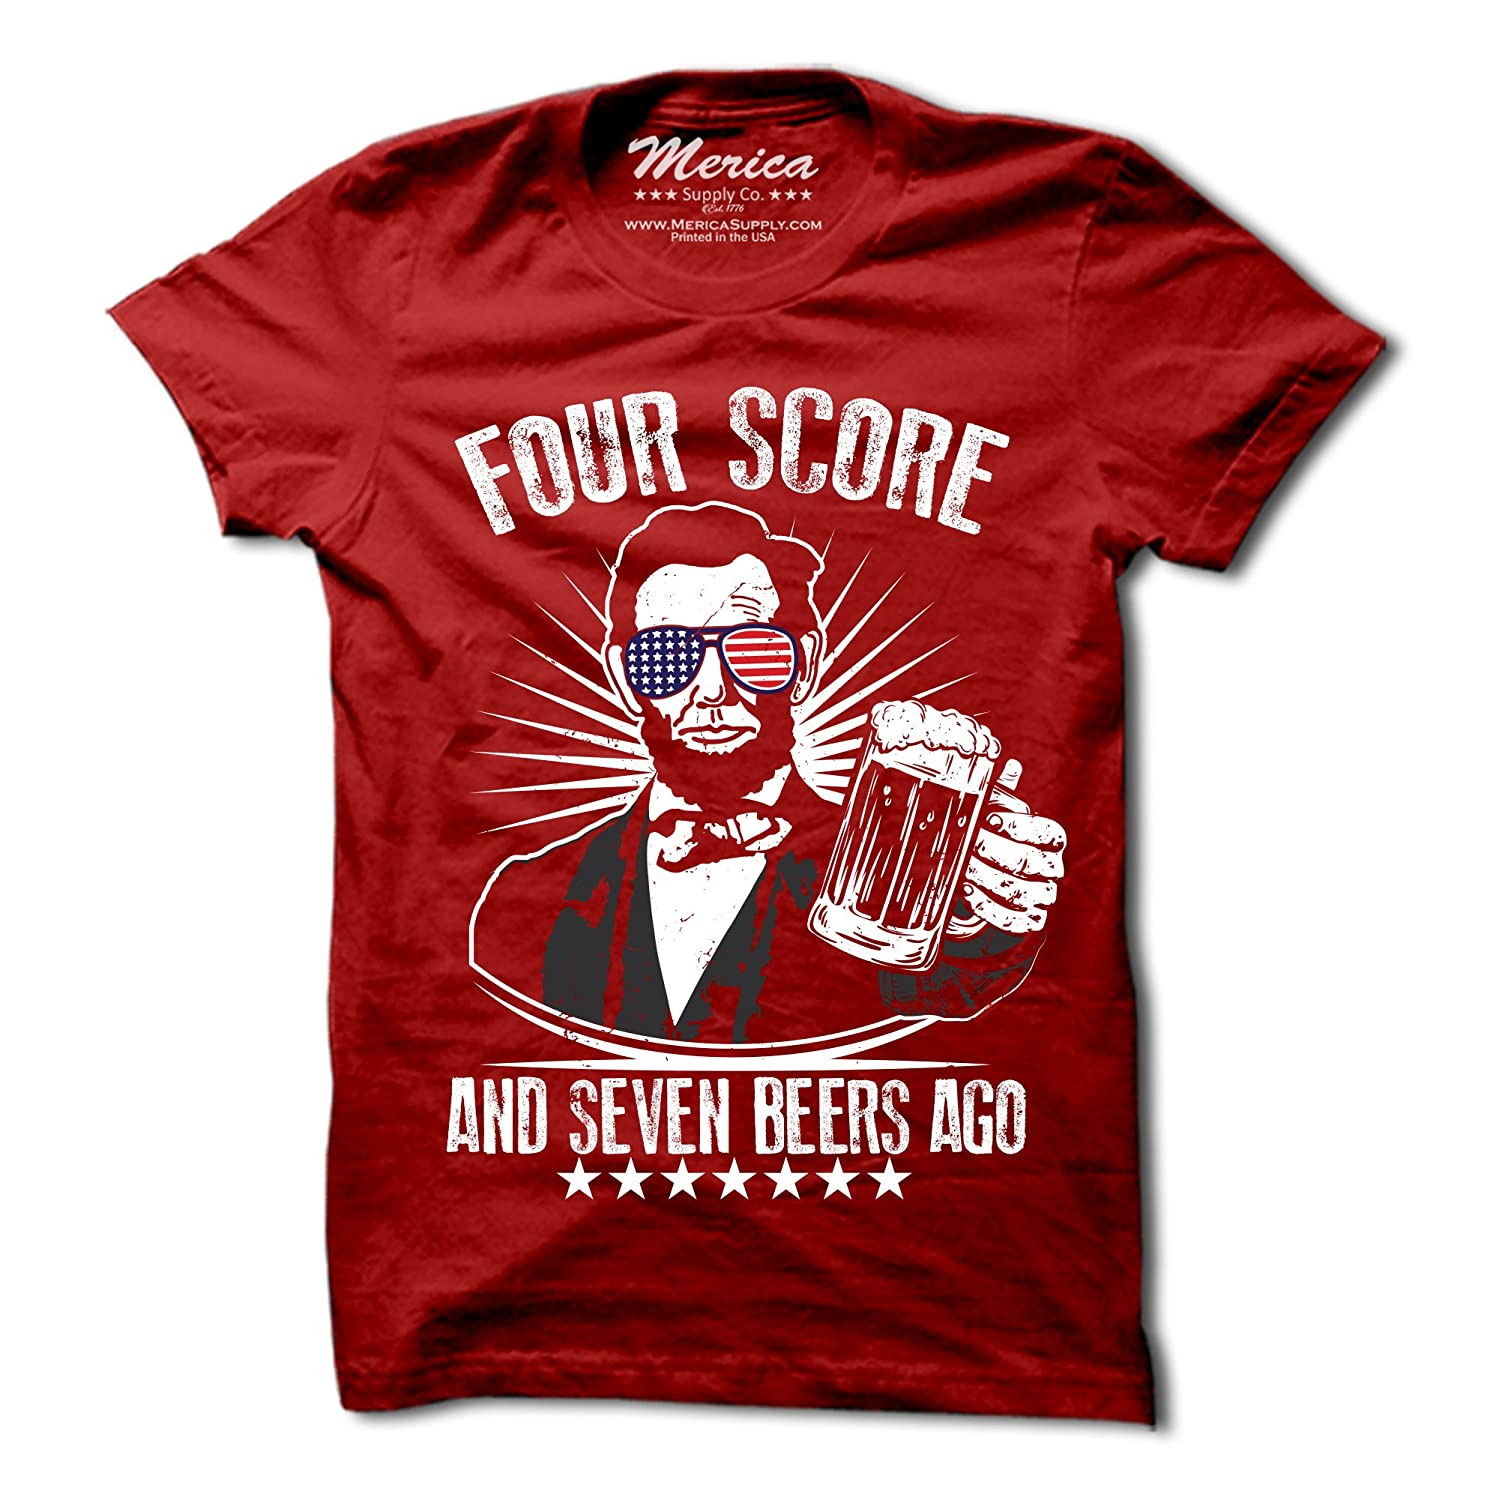 fe9ece0b Amazon.com: Merica Supply Co. Four Score and Seven Beers Ago Shirt - Funny  Abe Lincoln T-Shirt - Mens USA Tee: Clothing